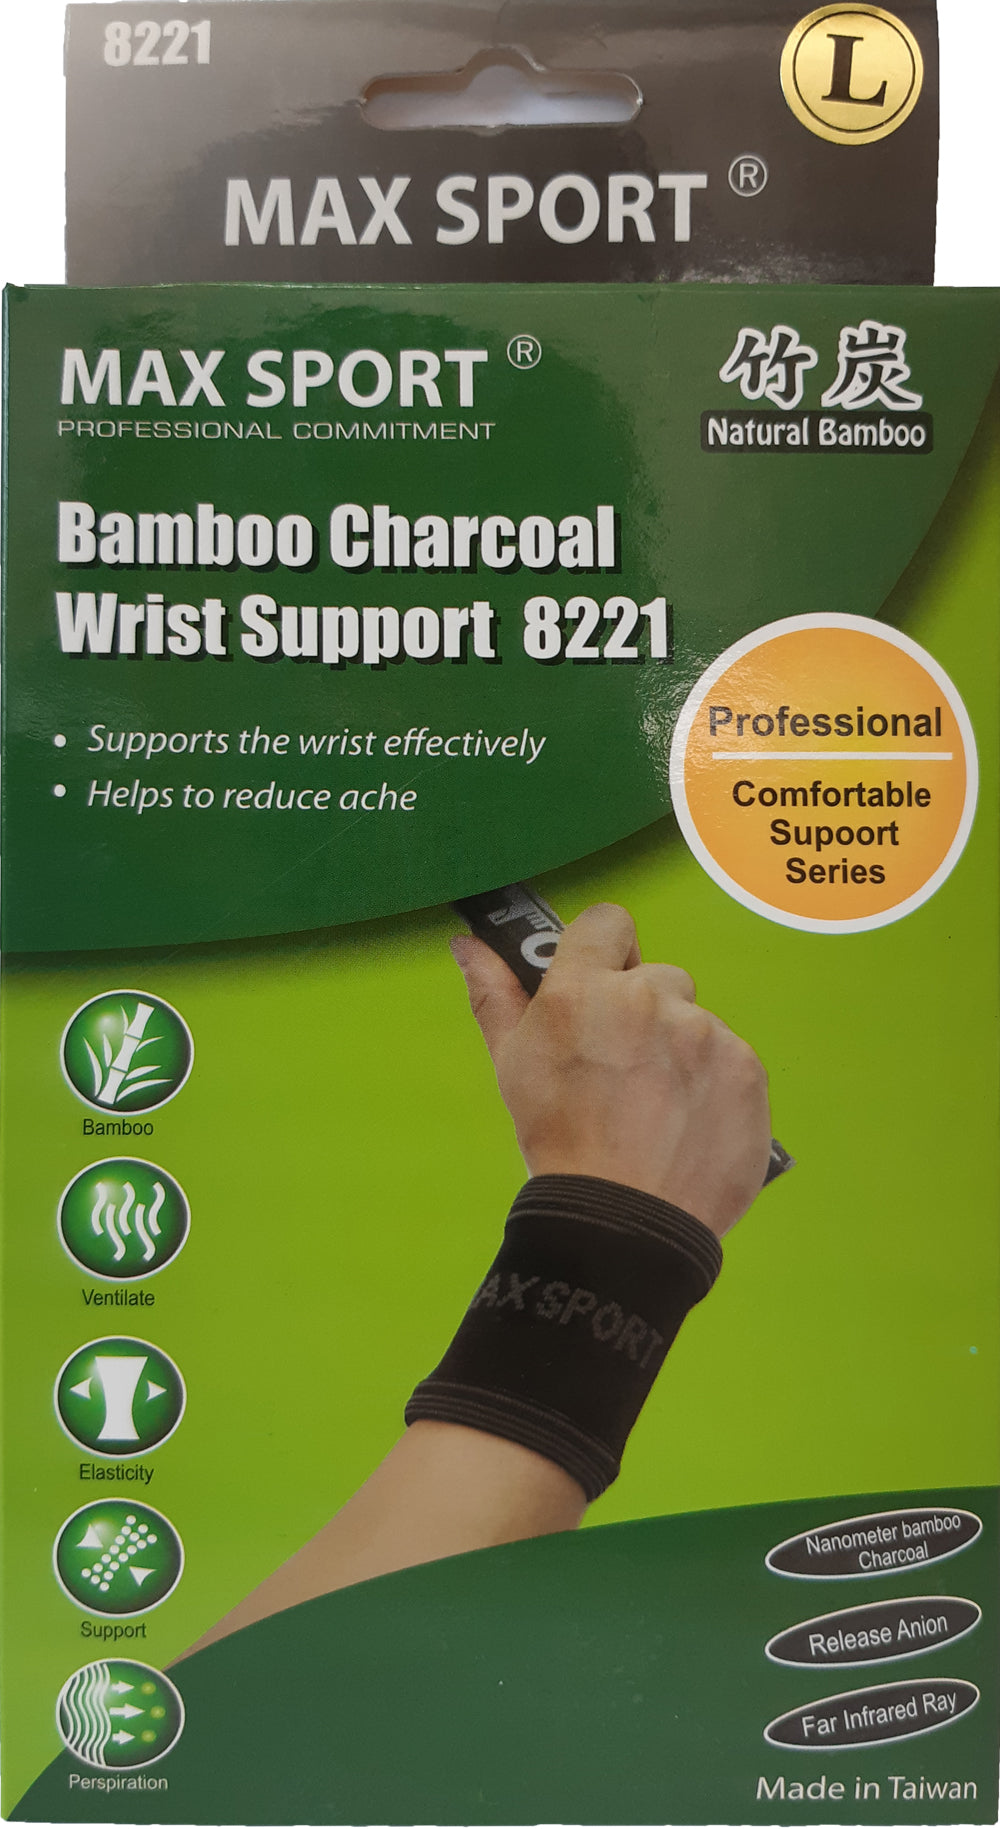 MAX SPORT Bamboo Charcoal Wrist Support 8221